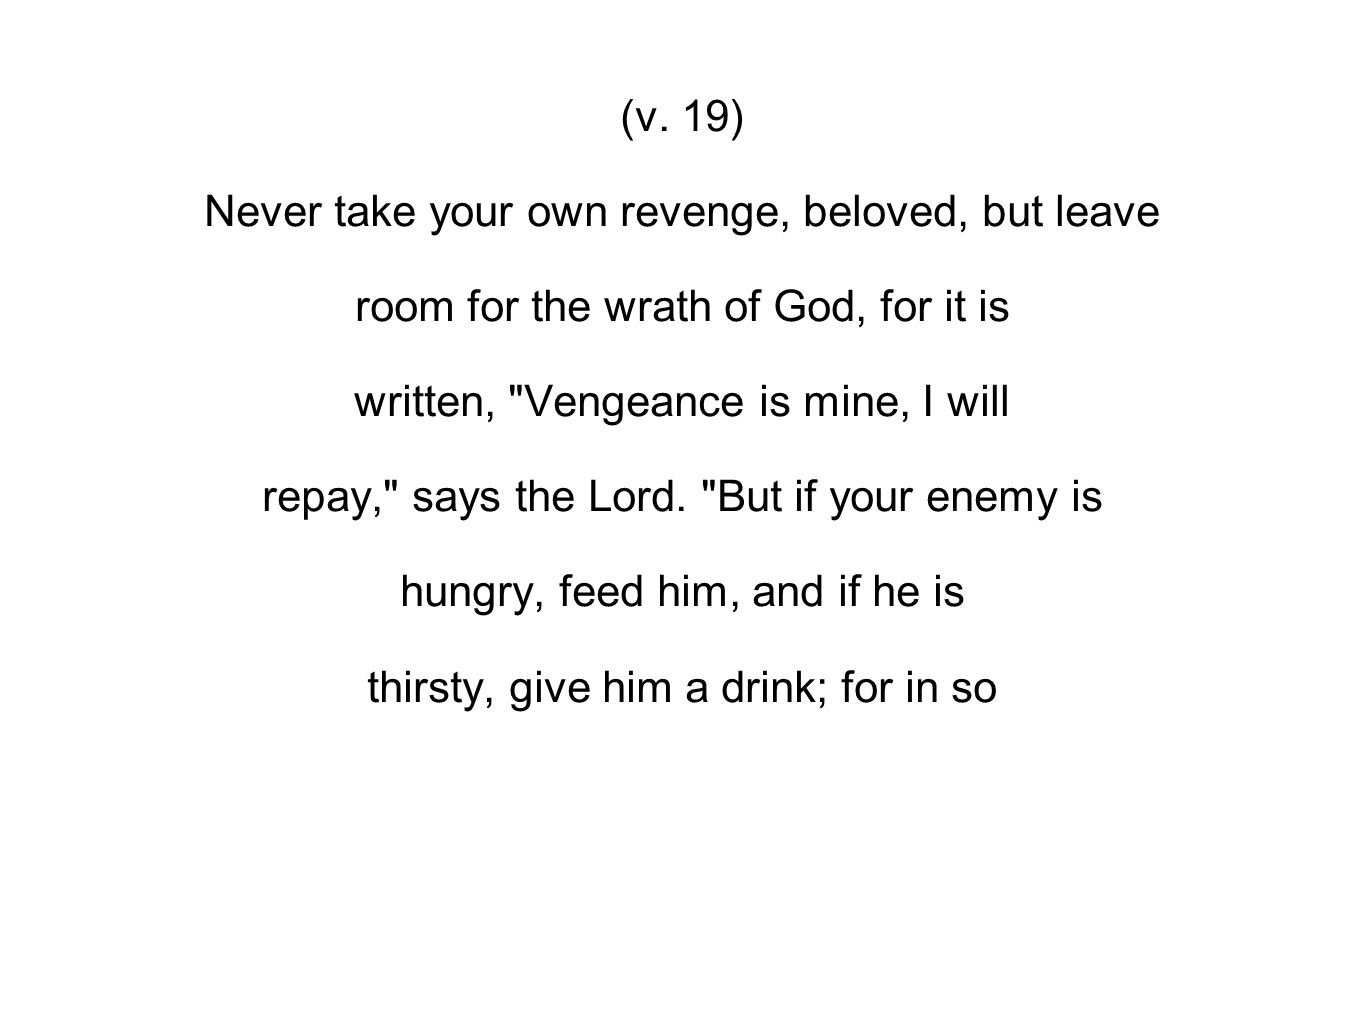 (v. 19) Never take your own revenge, beloved, but leave room for the wrath of God, for it is written,